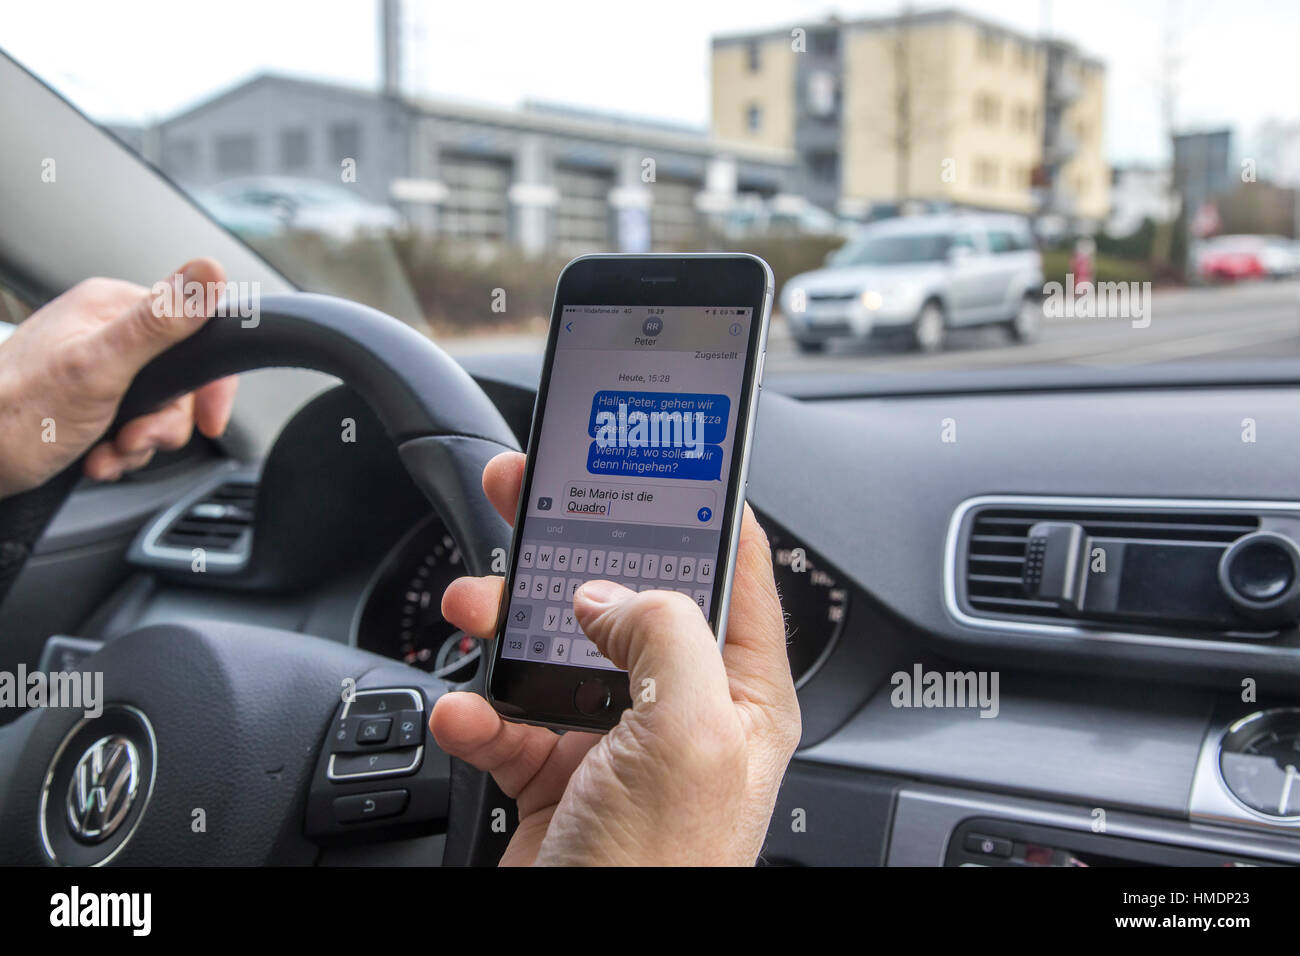 A car driver is using a mobile phone, smartphone, while driving the car, reading SMS messages, - Stock Image